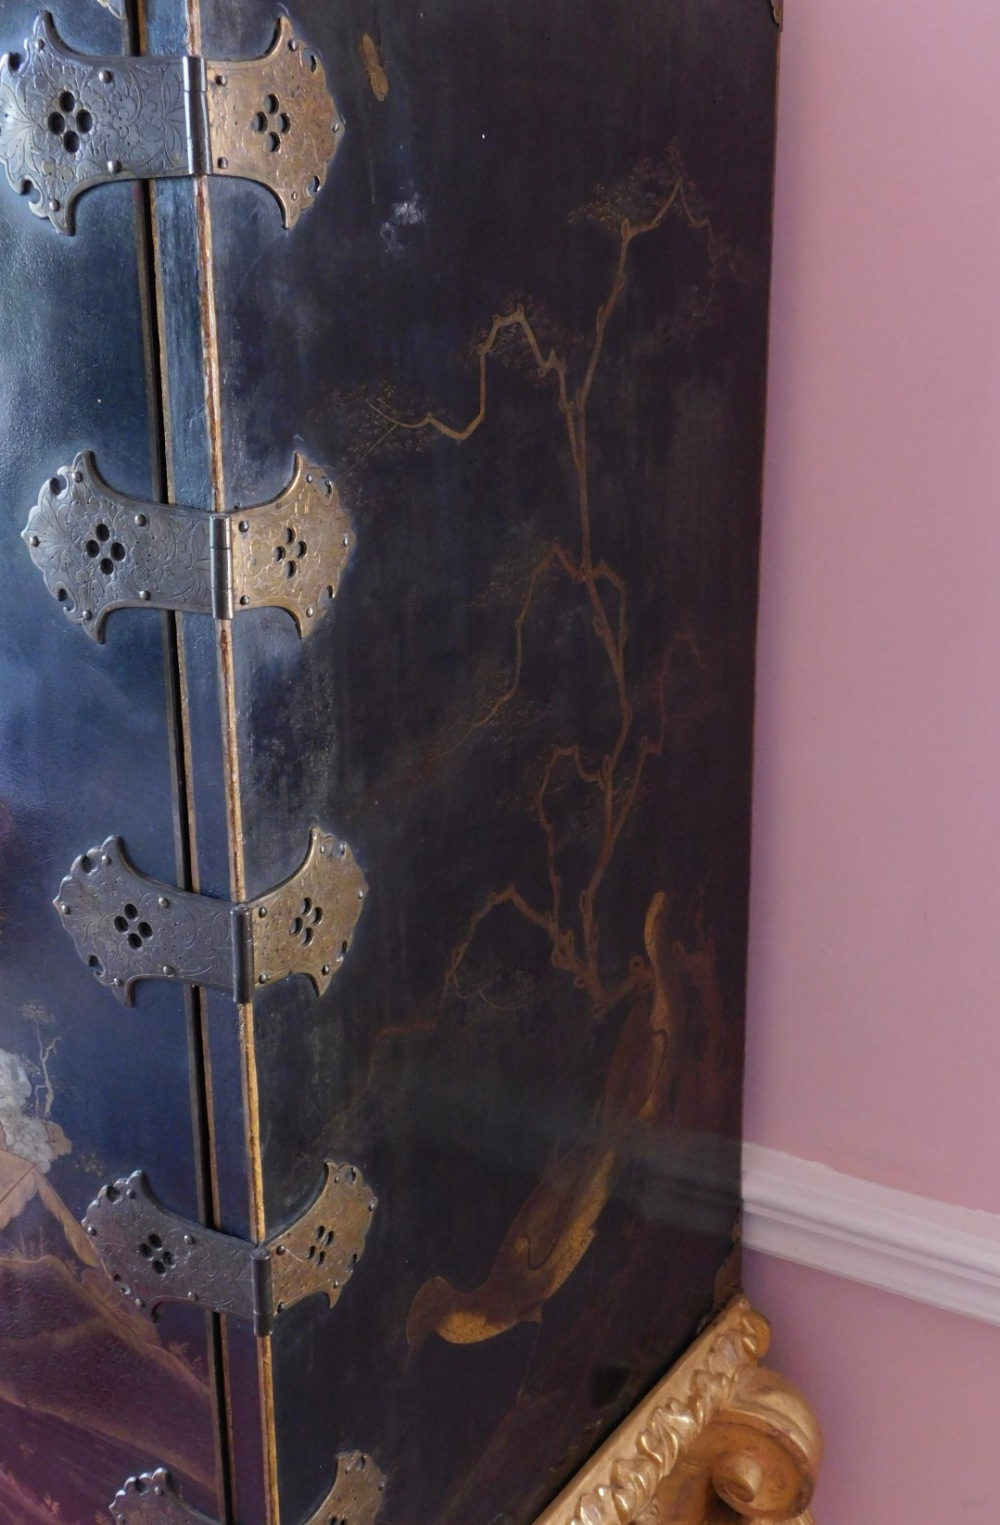 A late 17th/early 18thC Japanned cabinet, decorated in gilt and silver with flowers, buildings, etc. - Image 4 of 8